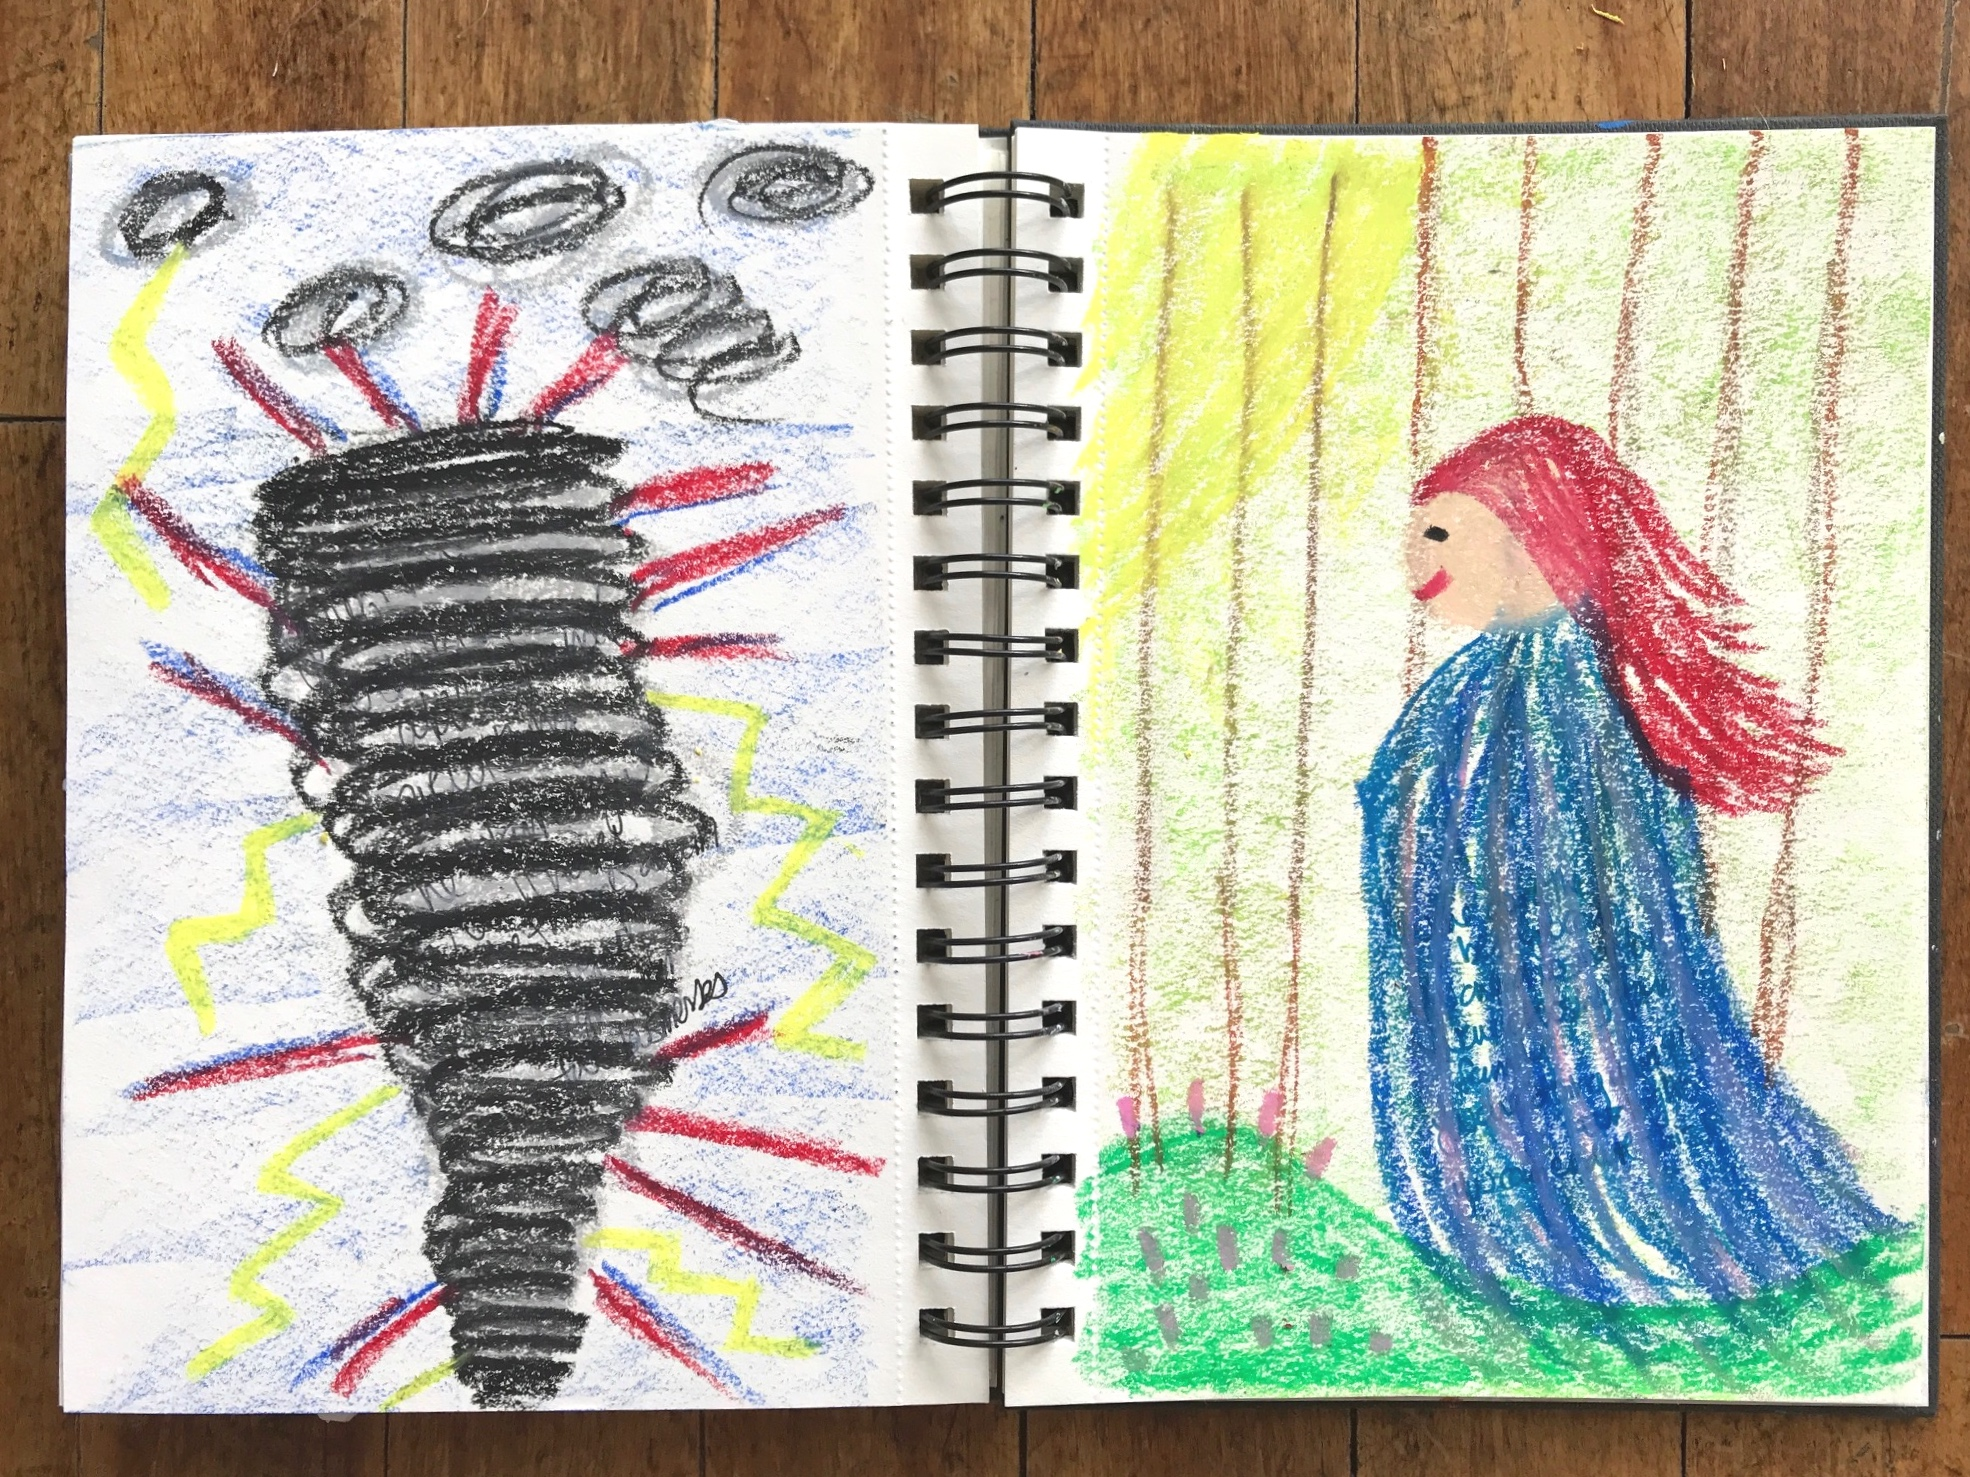 """KAYLA'S PROCESS   I started with my art journal open with two pages exposed. I was drawn to start with writing some of the words my inner critic was shouting at me during the visualization.  I moved onto using oil pastels to fill my page with colour. My inner critic presented as a tornado shouting and spitting things at me. I let the colours lead me.  I did the same process for my inner champion. I wrote some of the words they were whispering to me. My inner champion presented as a gentle """"mother nature"""" kind of woman. Someone who could calm my storm. Someone who was holding me in times of need - gently bringing be back into the bright side of the day.  This exercise is something you can actually do over and over. Every time I do this exercise something different surfaces and I am left with a new epiphany about my inner dialogue. I often get a little brain-reset on how I can speak kinder to myself and how I can reduce some of the noise happening inside my """"storm""""."""